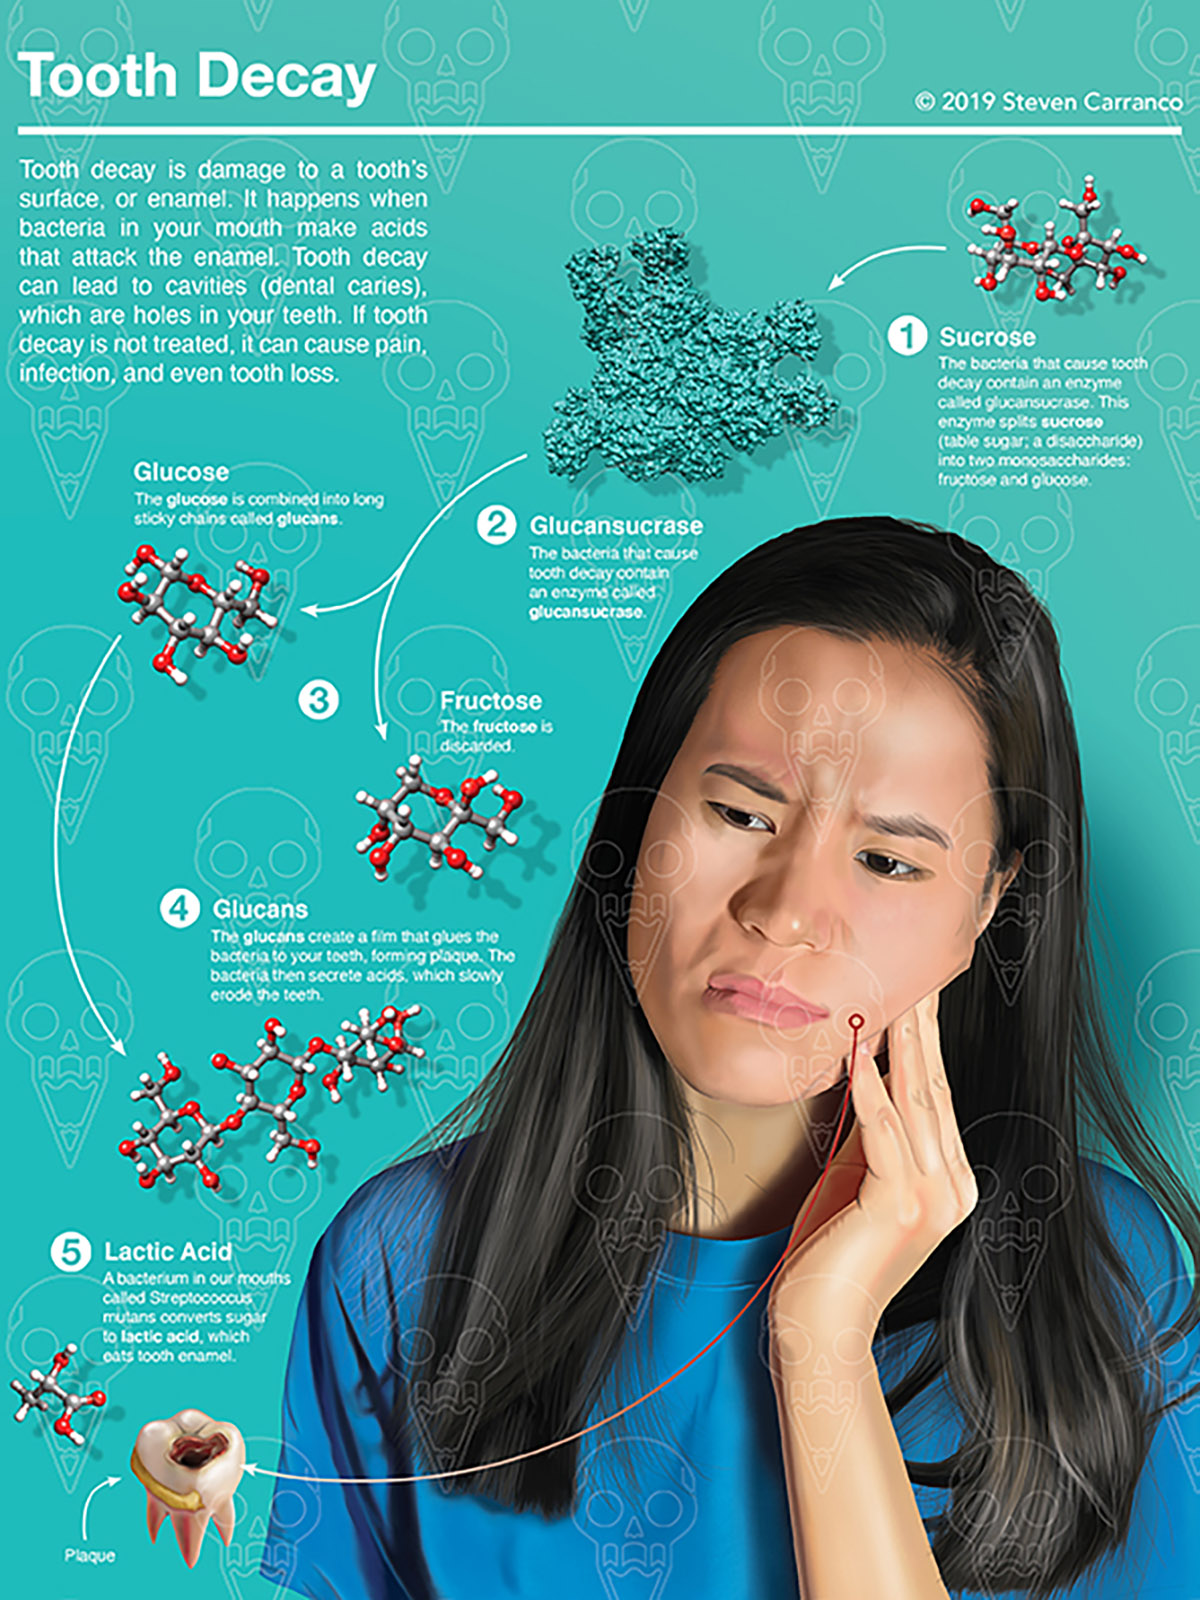 A woman in discomfort from tooth decay.